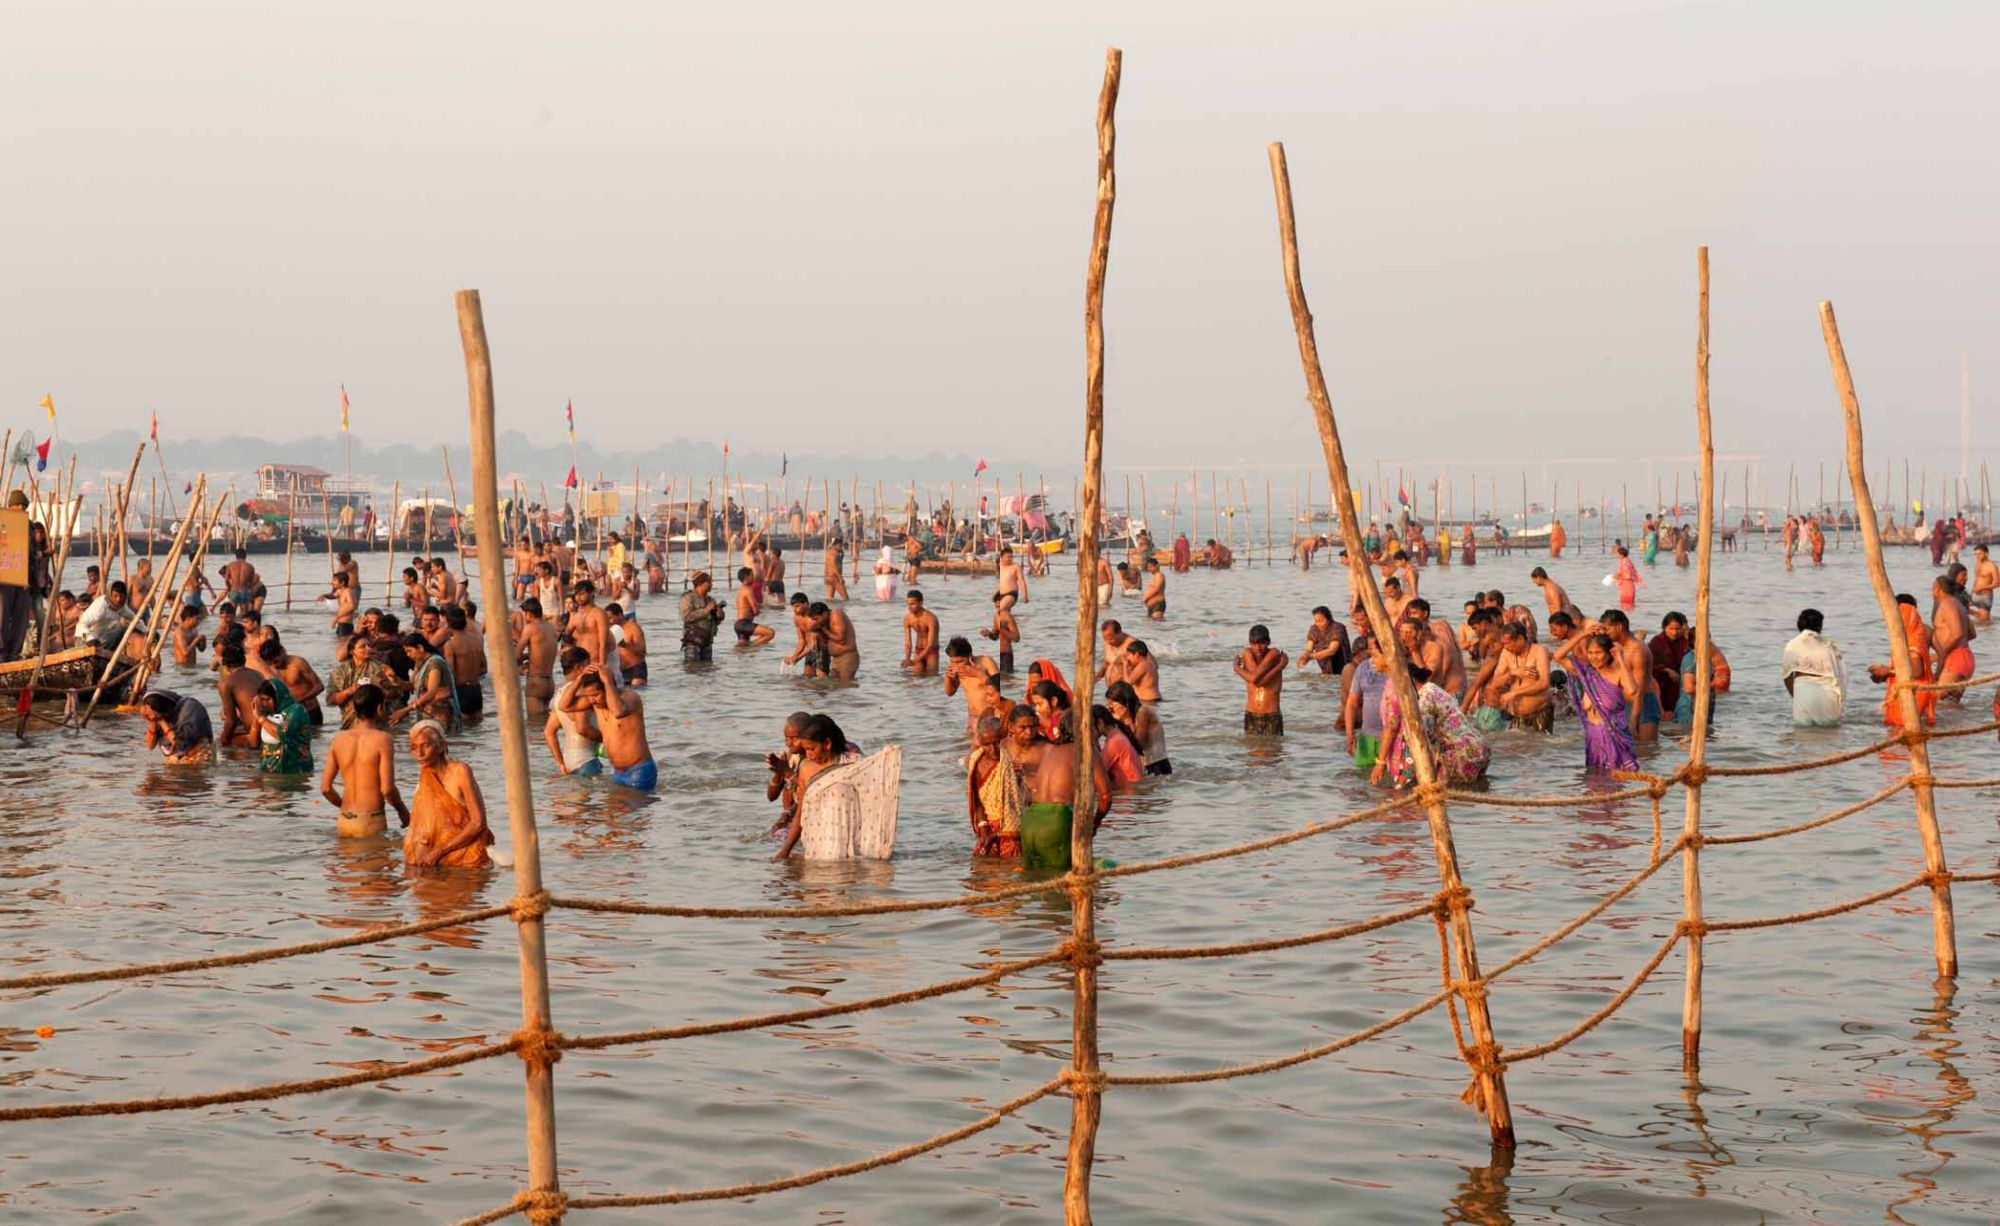 Pages 82-83: Immersing For the Kumbh Mela Festivities